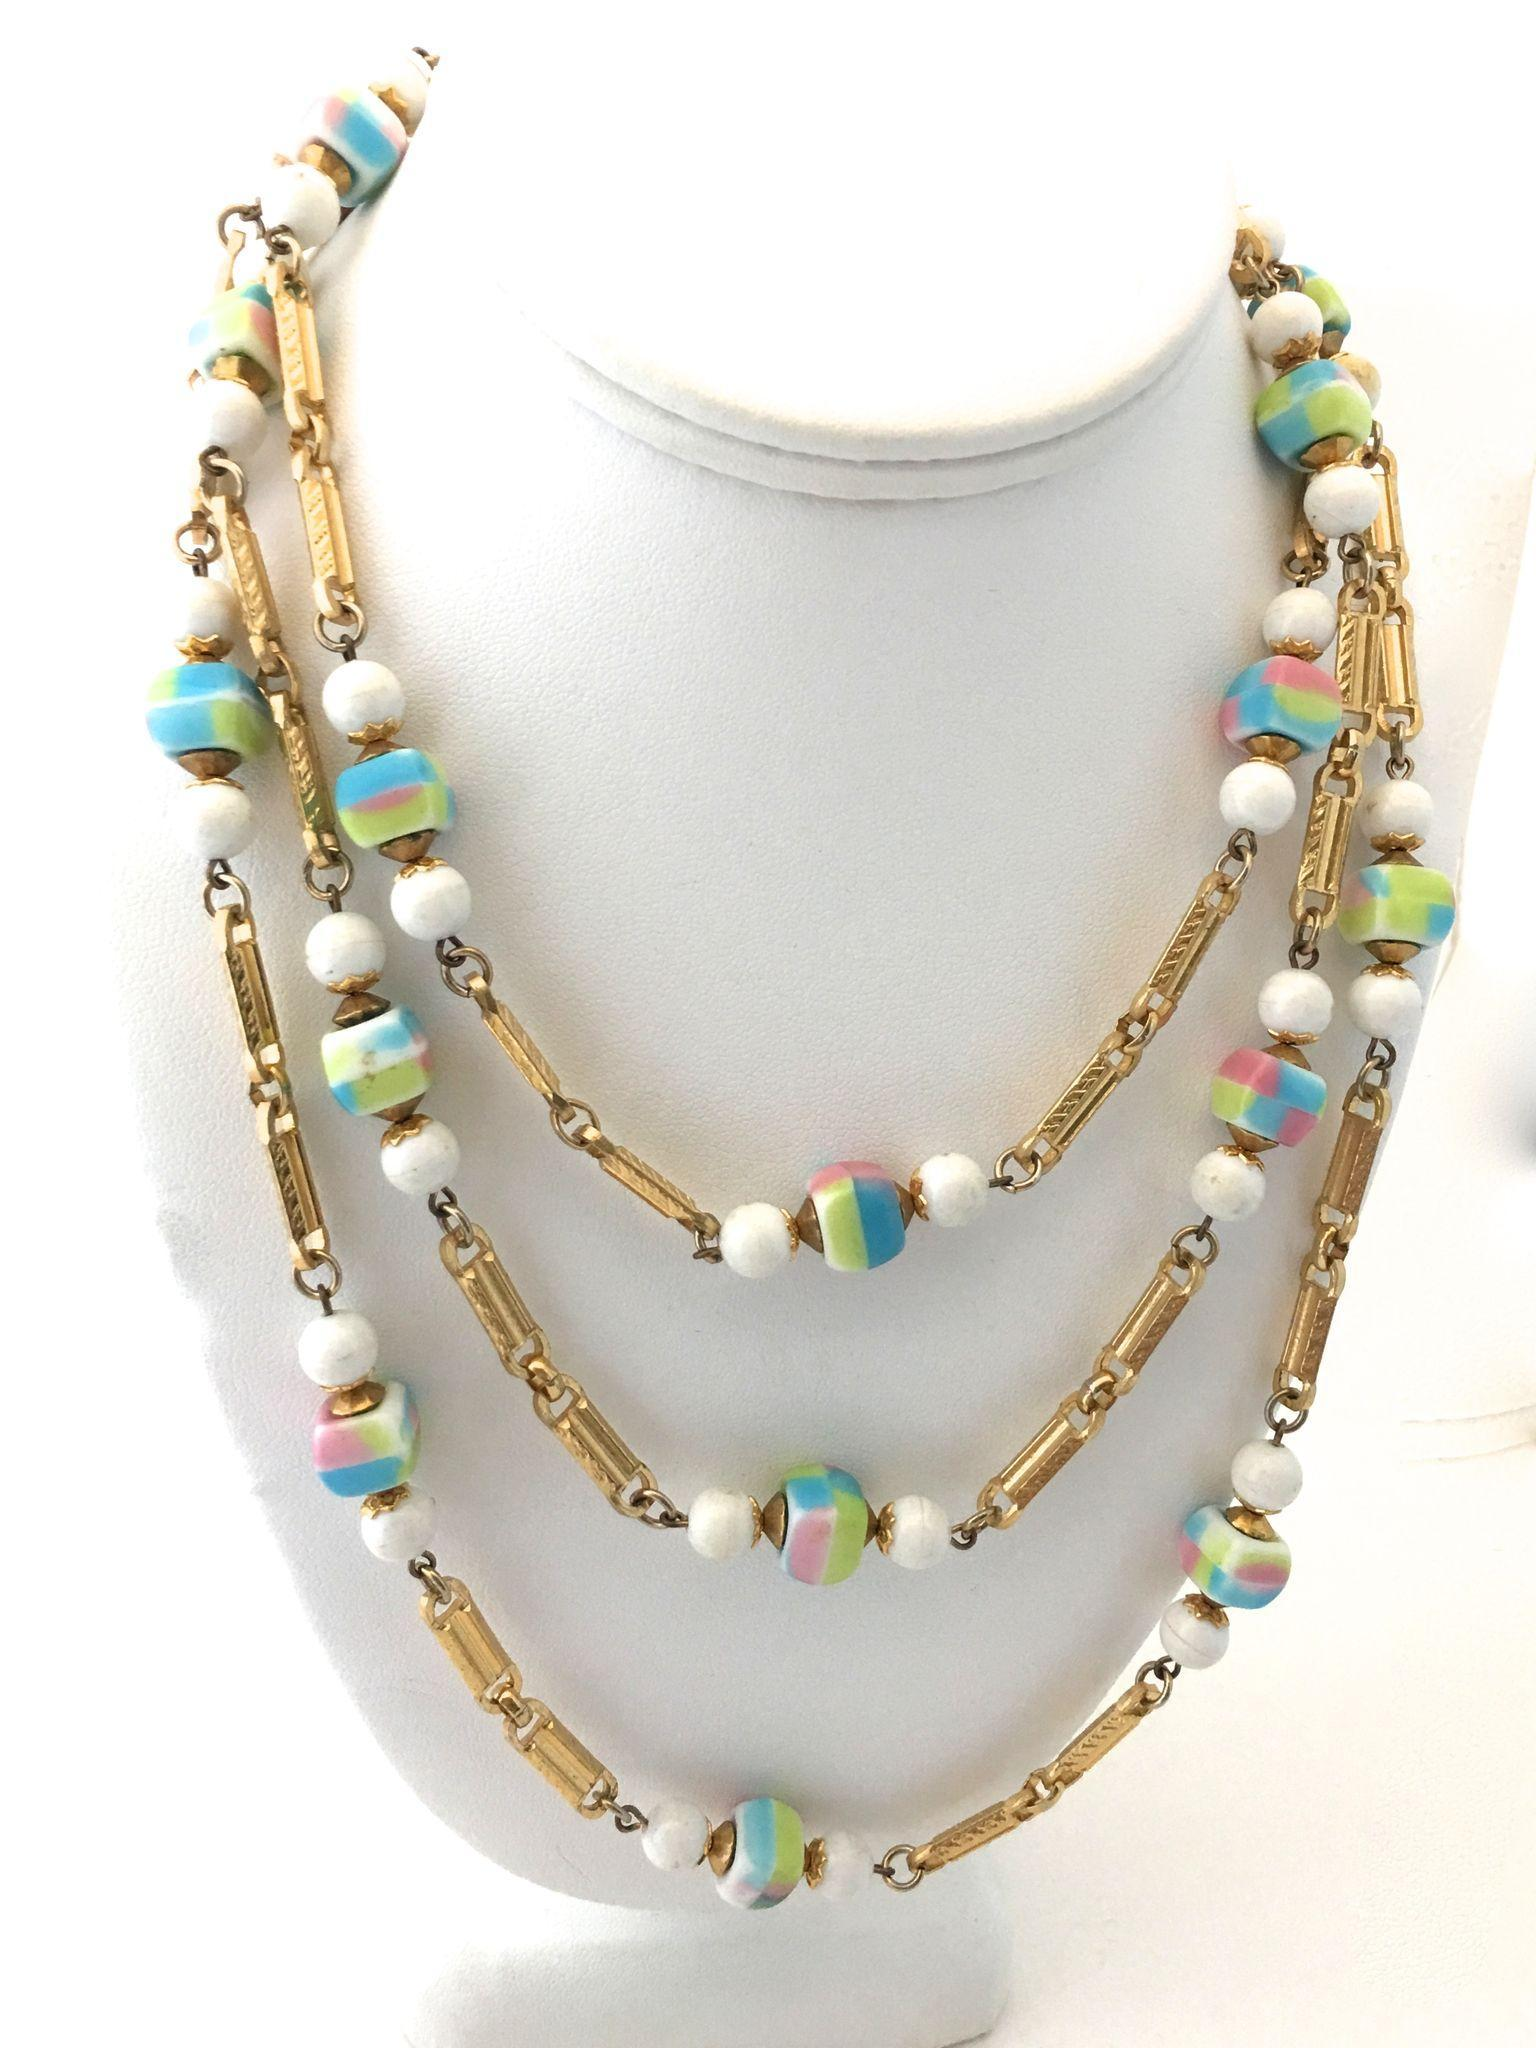 Hobe '60s Art Glass Necklace